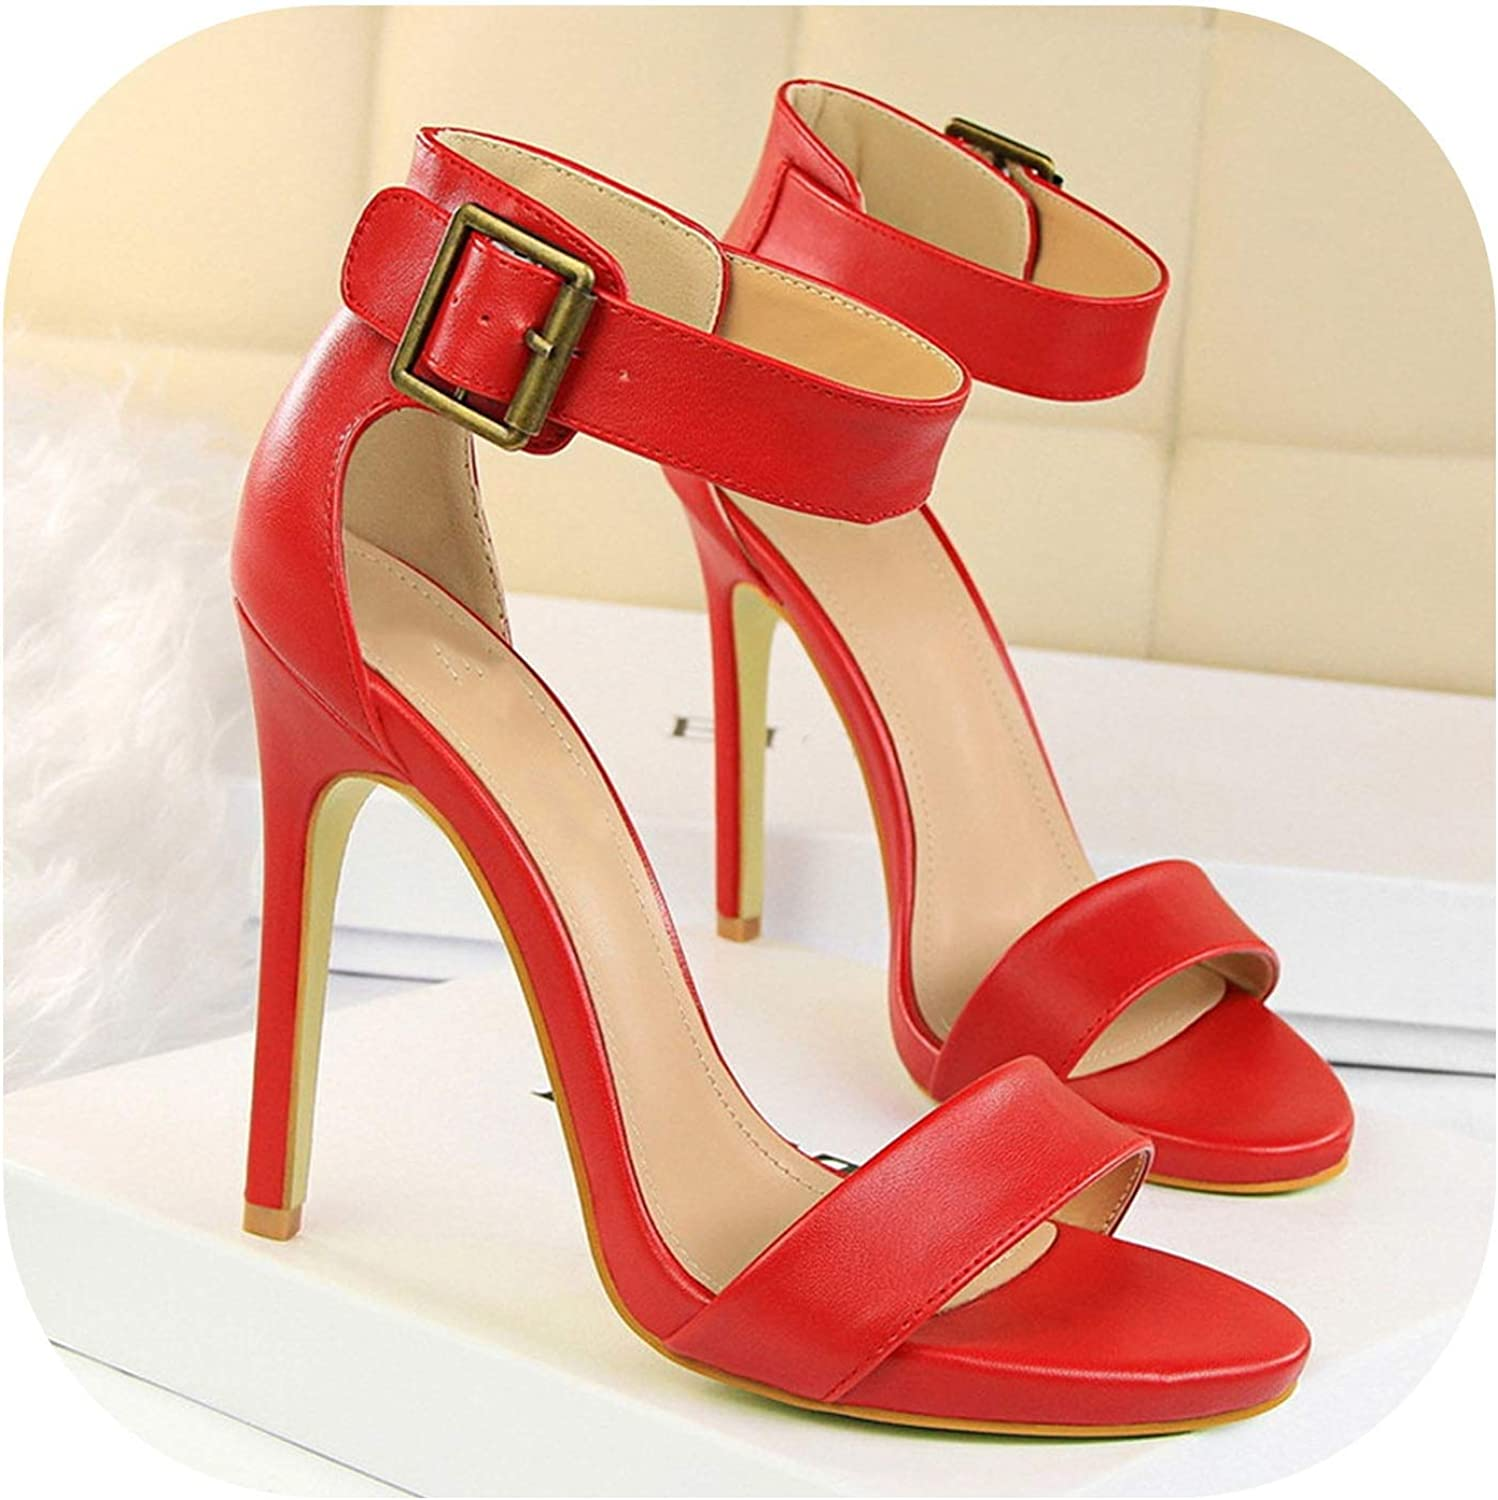 Women Sandals Solid High Heels PU Leather High Heels Sandals Open Toe Buckle Women's shoes